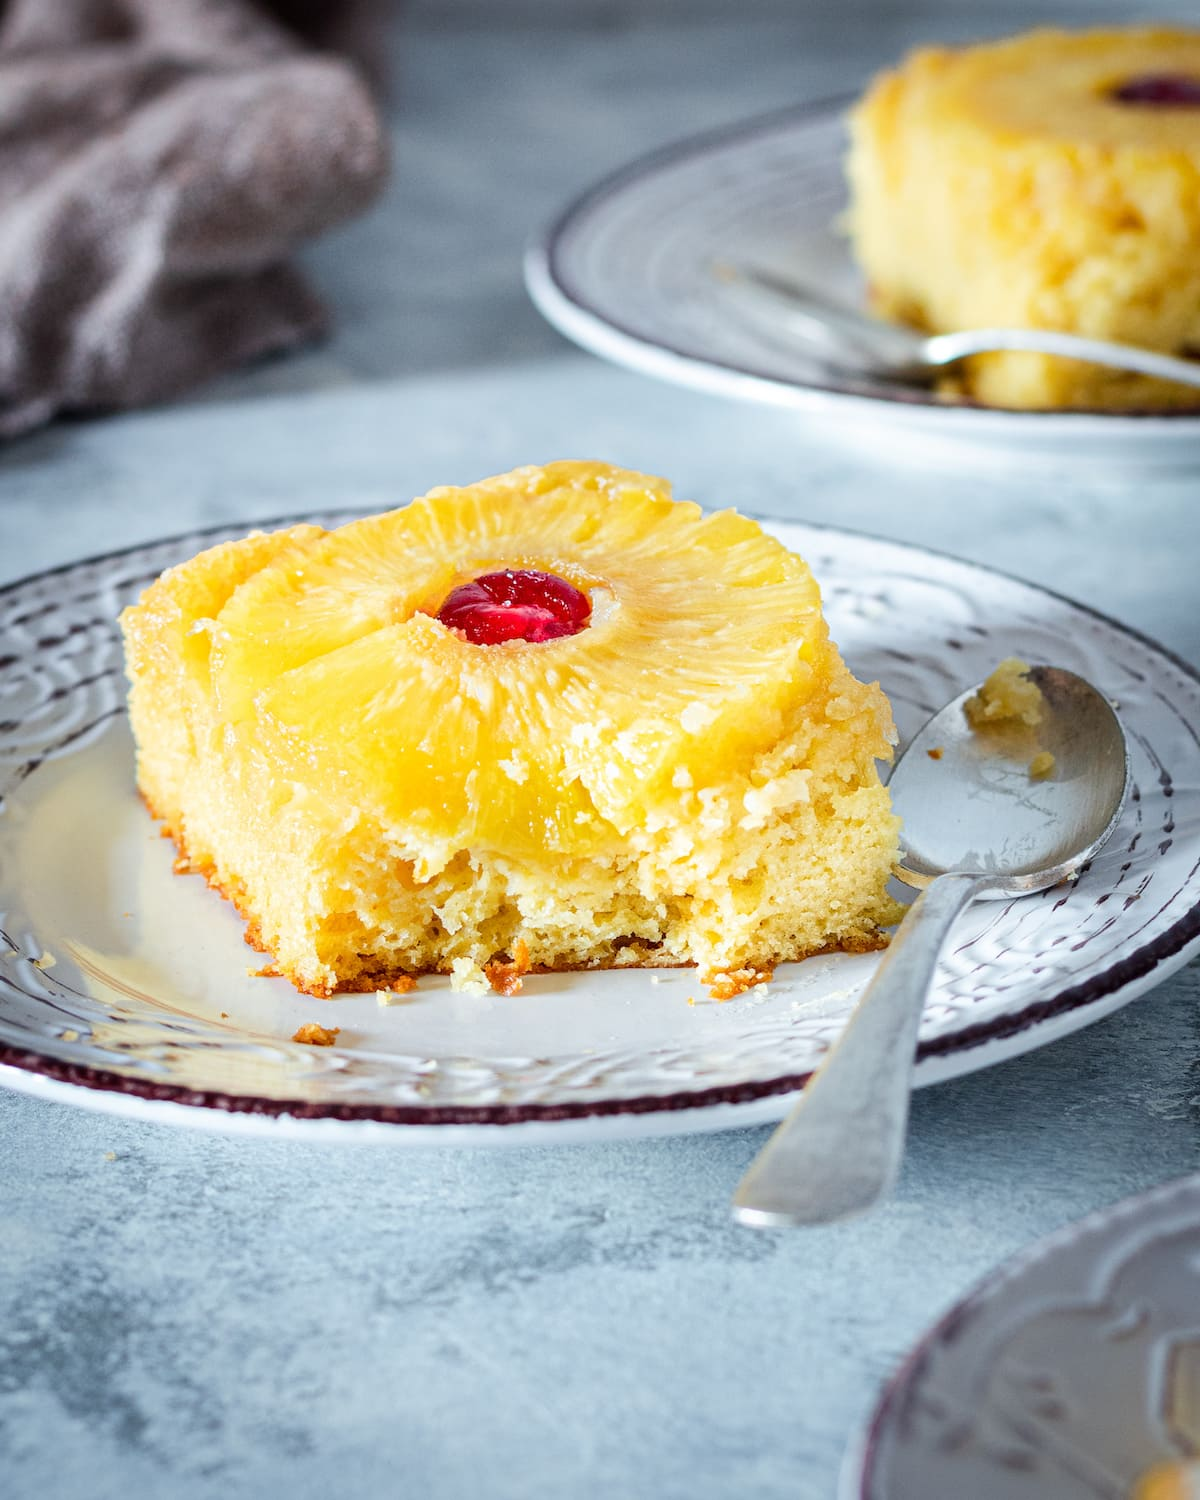 Pineapple upside down cake with a cherry.